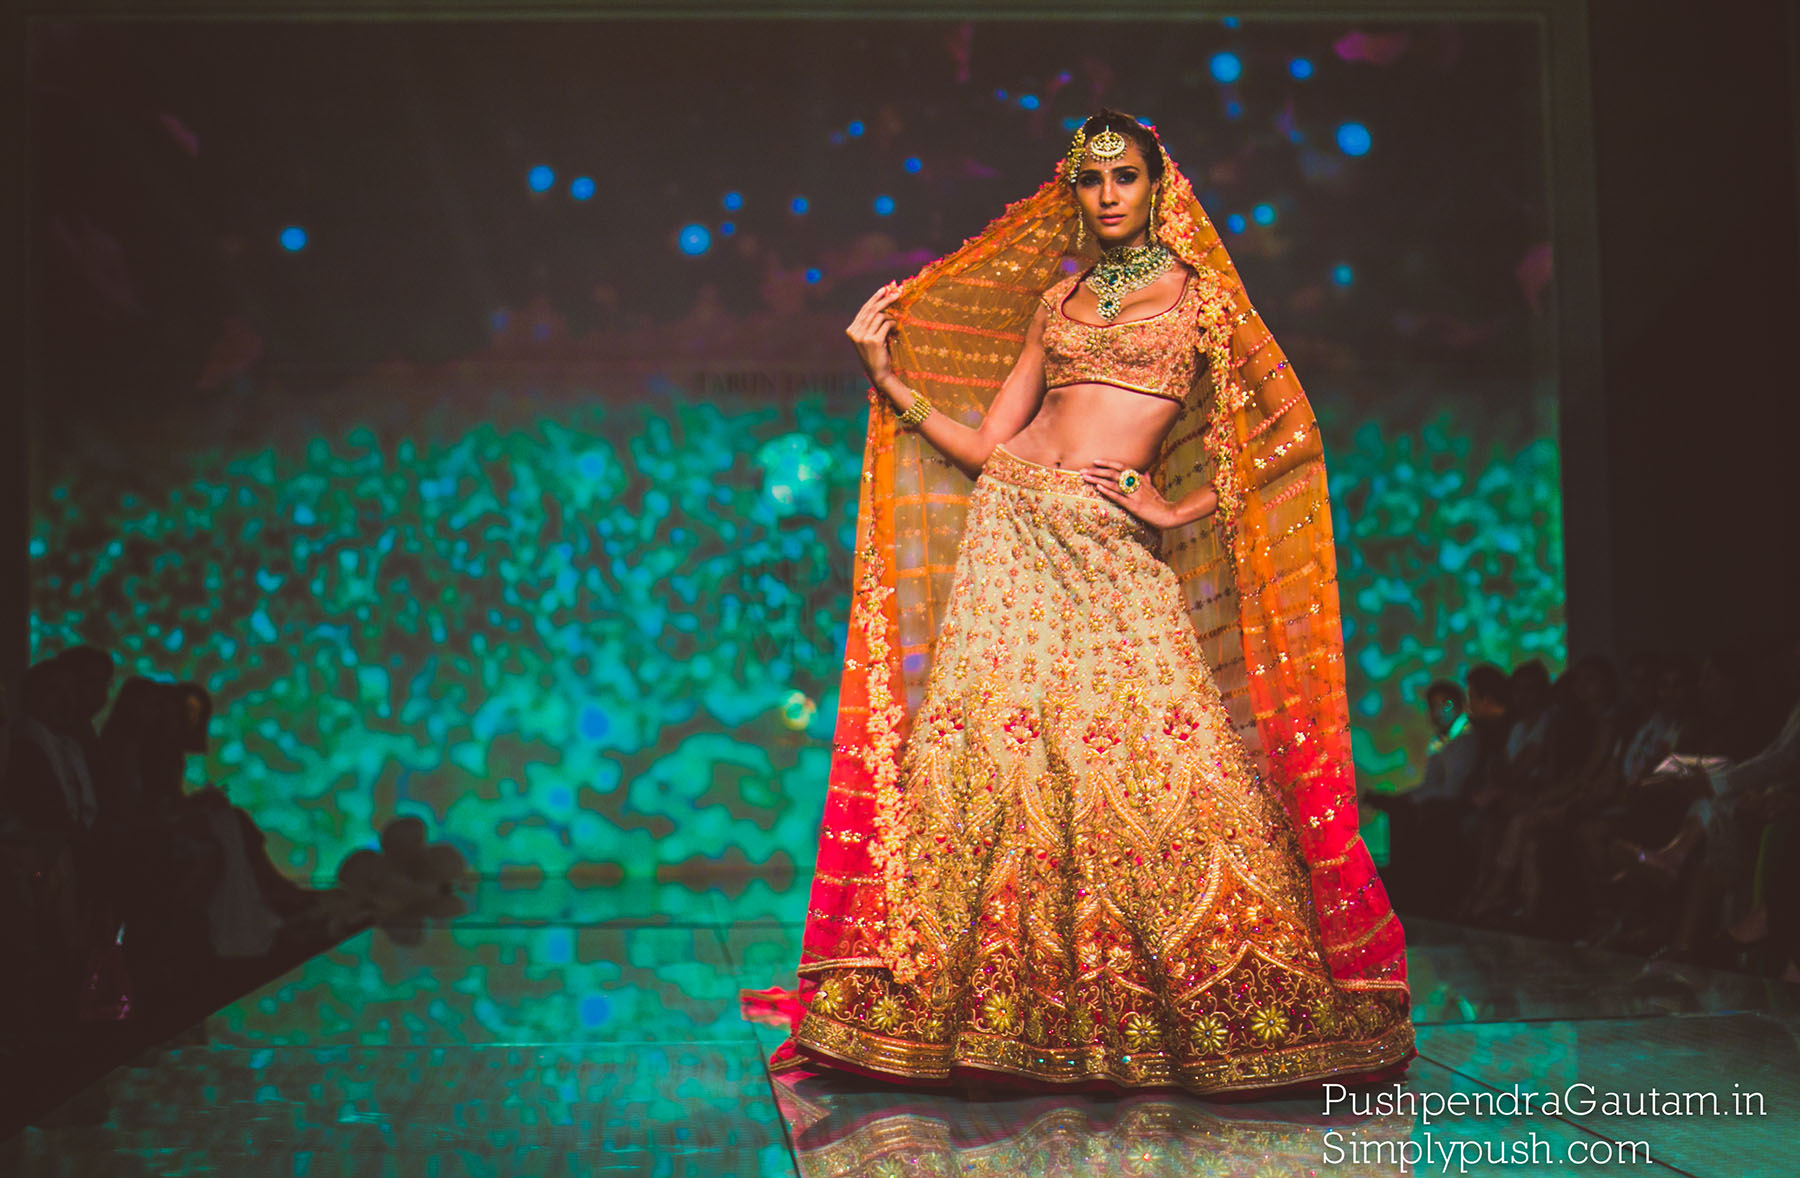 Tarun-tahiliani-collection-pics-bridal-fashion-week-delhi-by-india-best-event-travel-lifestyle-photographer-pushpendra-gautam